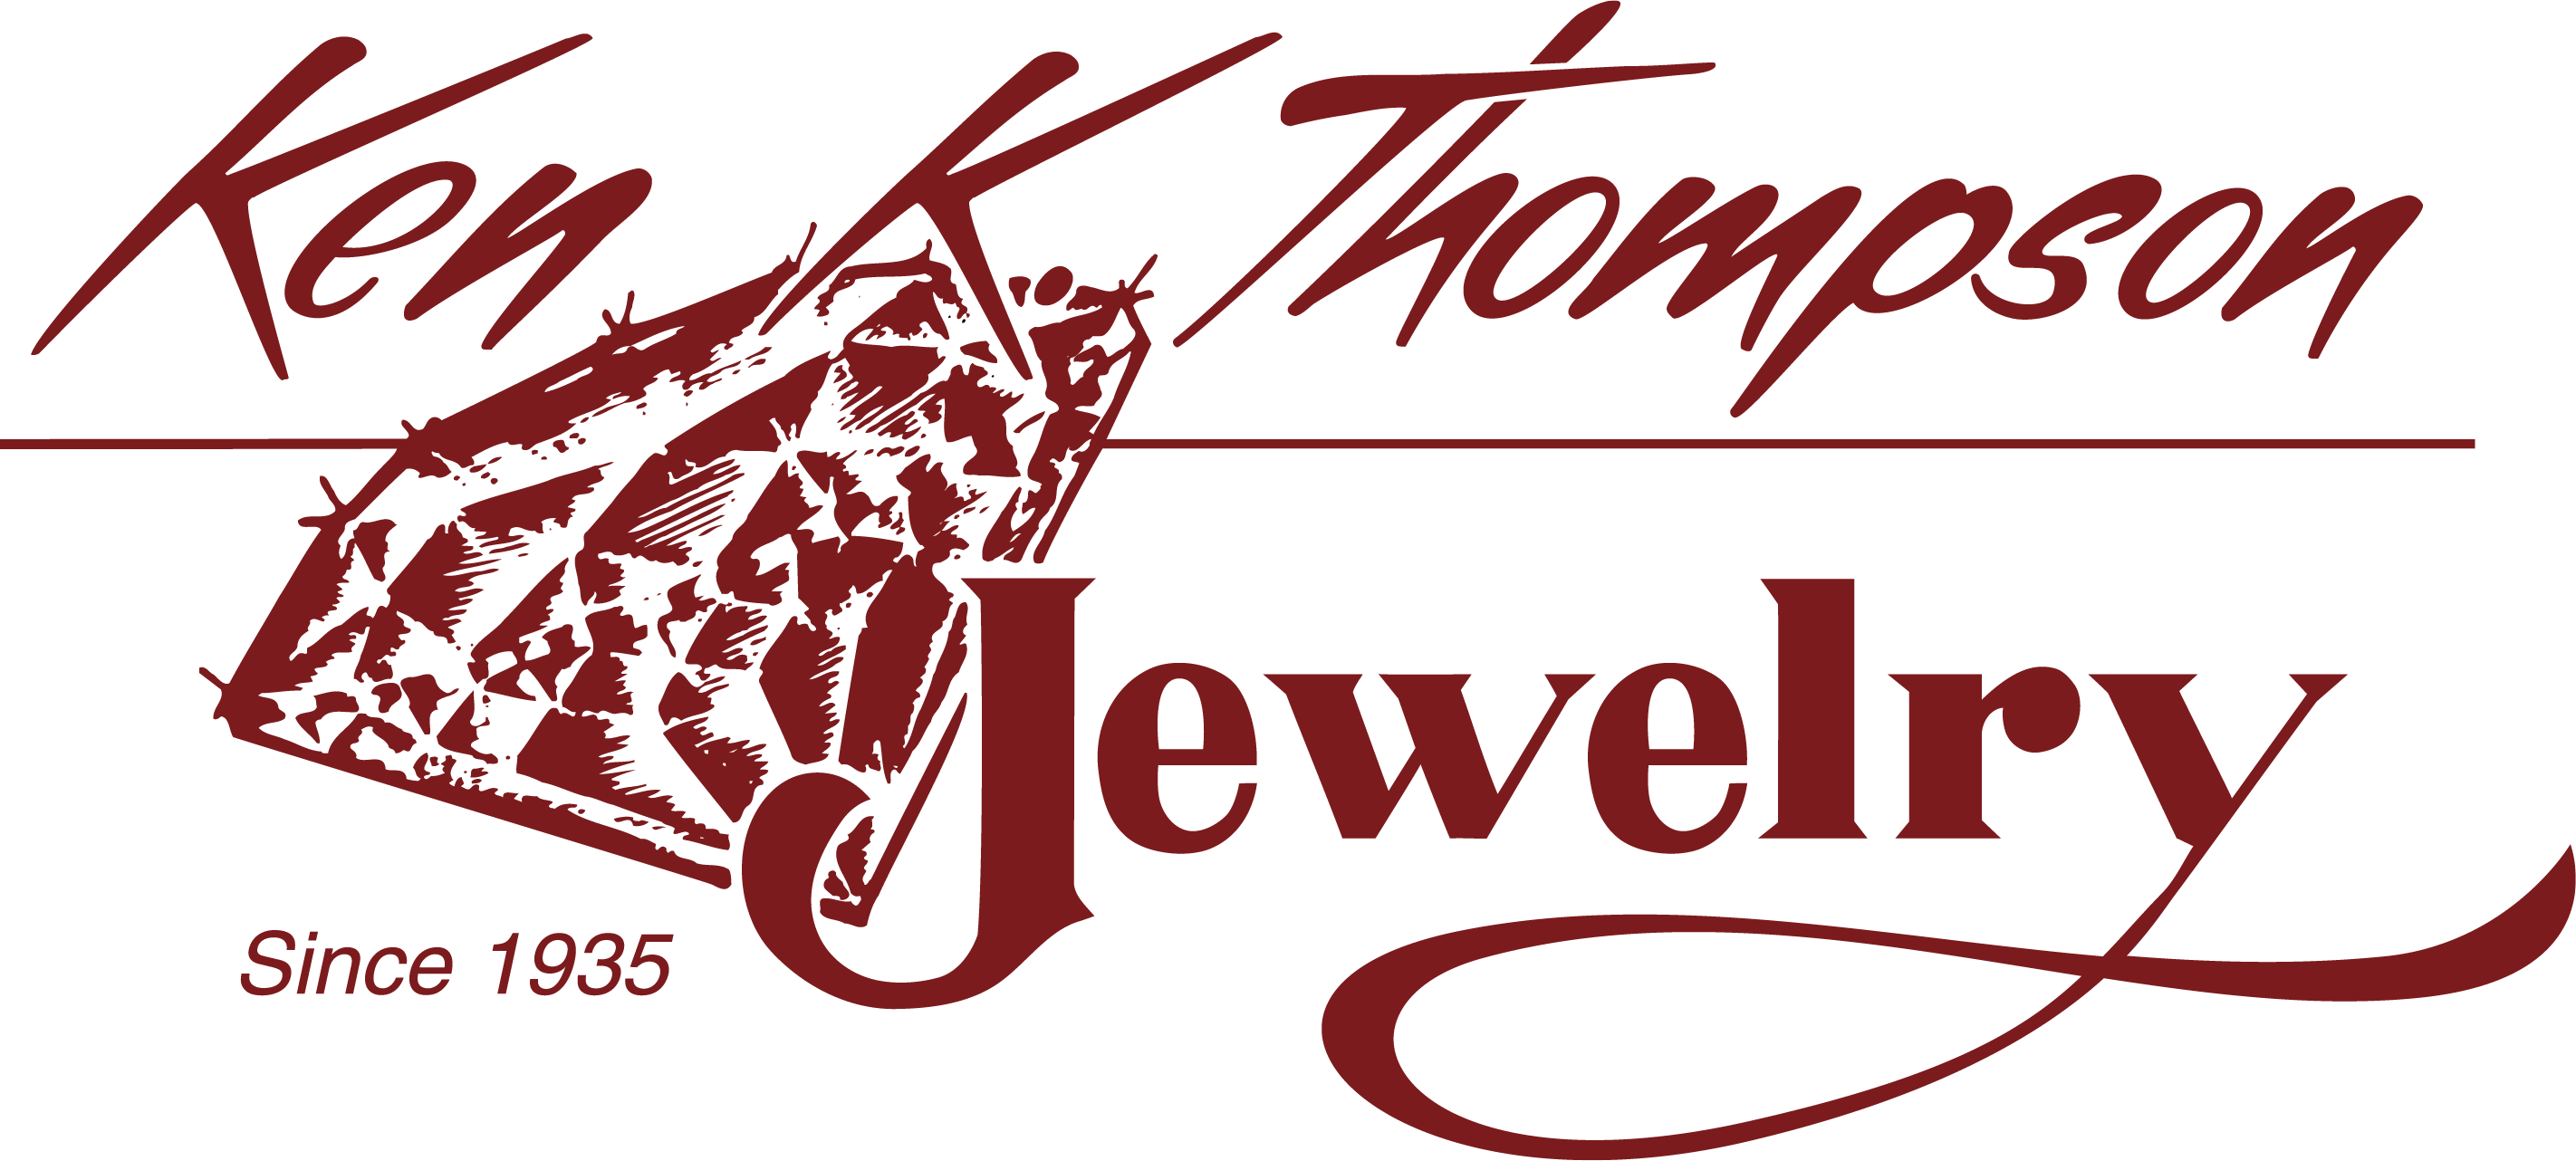 Ken K. Thompson Jewelry